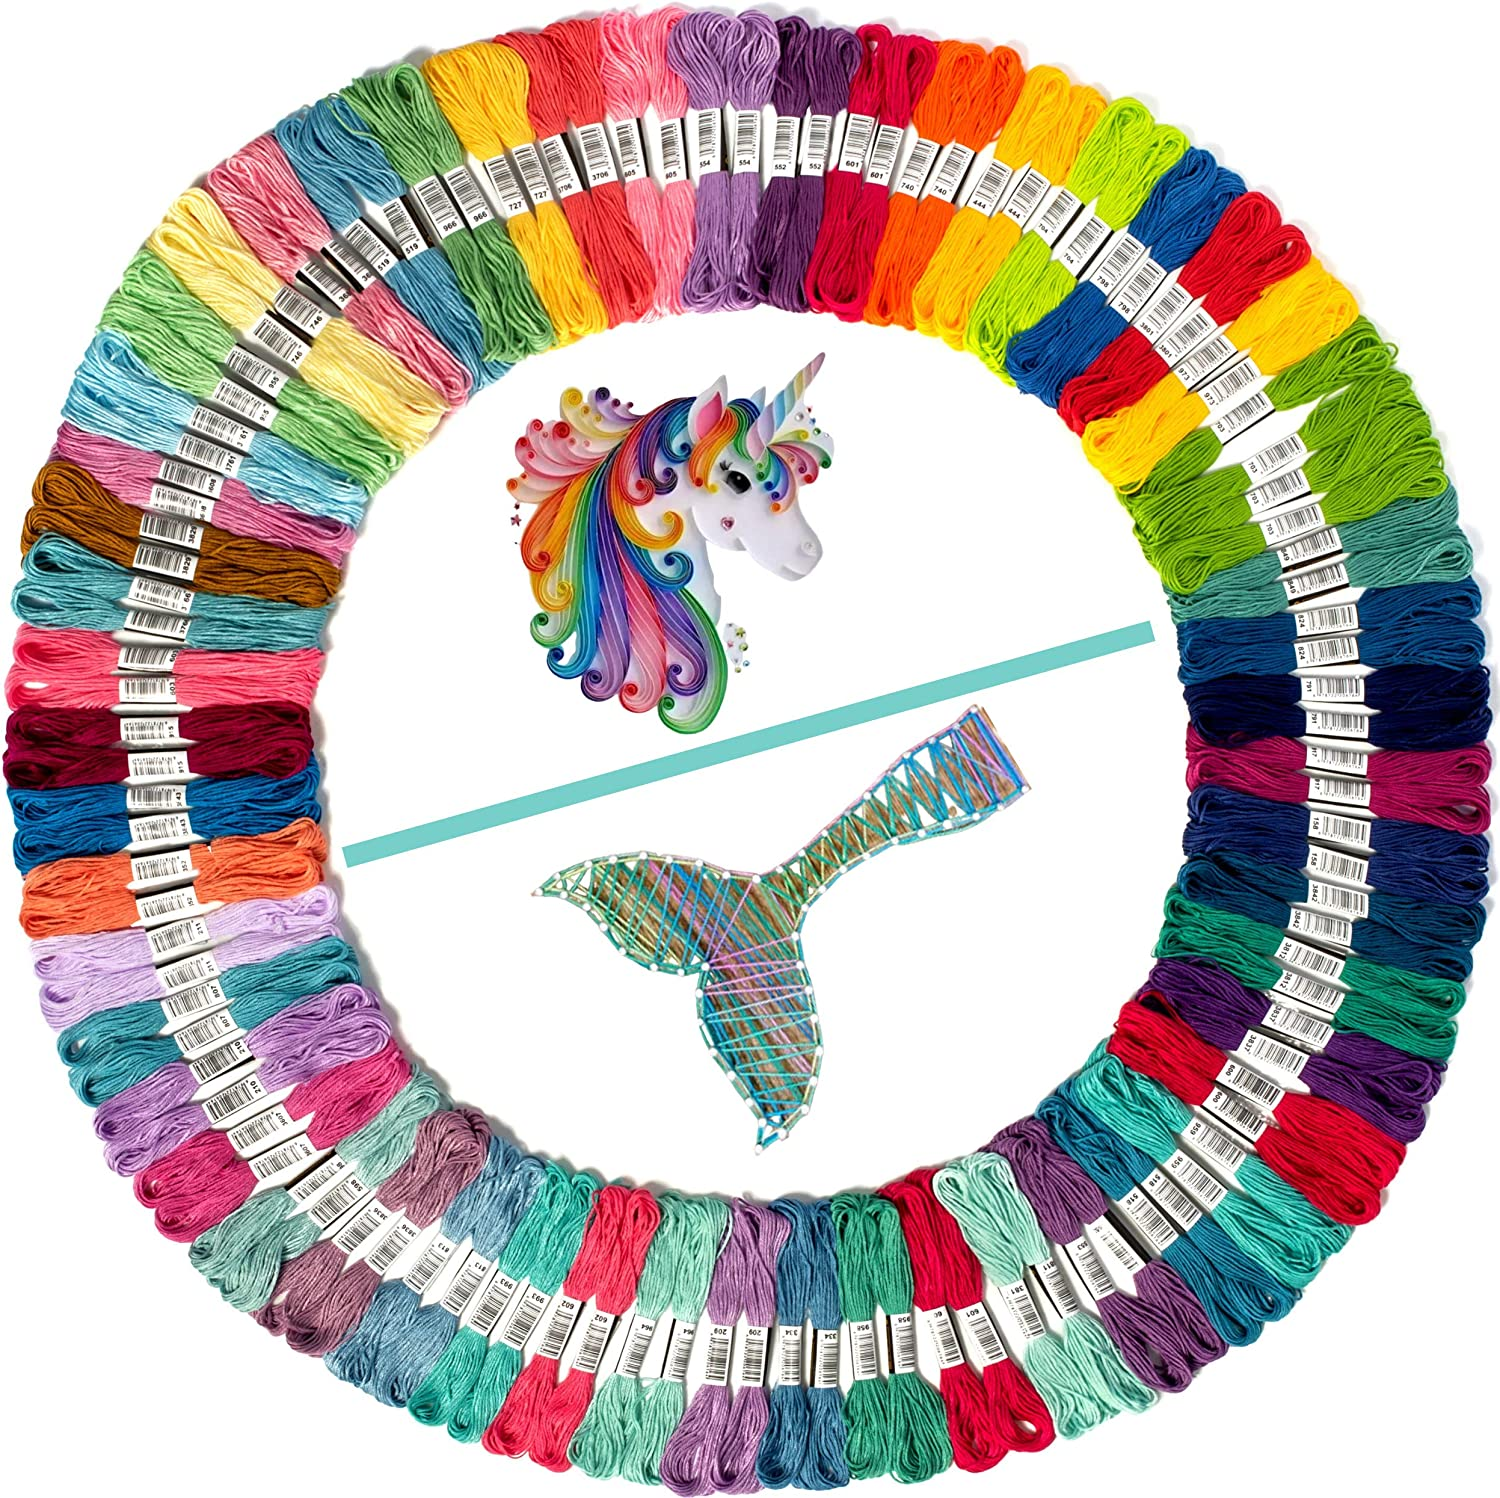 Best Bracelets String Set Thread or String Craft Cross Stitch 100 Embroidery Floss Coded as Embroidery Thread Numbers Friendship Bracelet String Embroidery Thread Mermaid Color Palettes